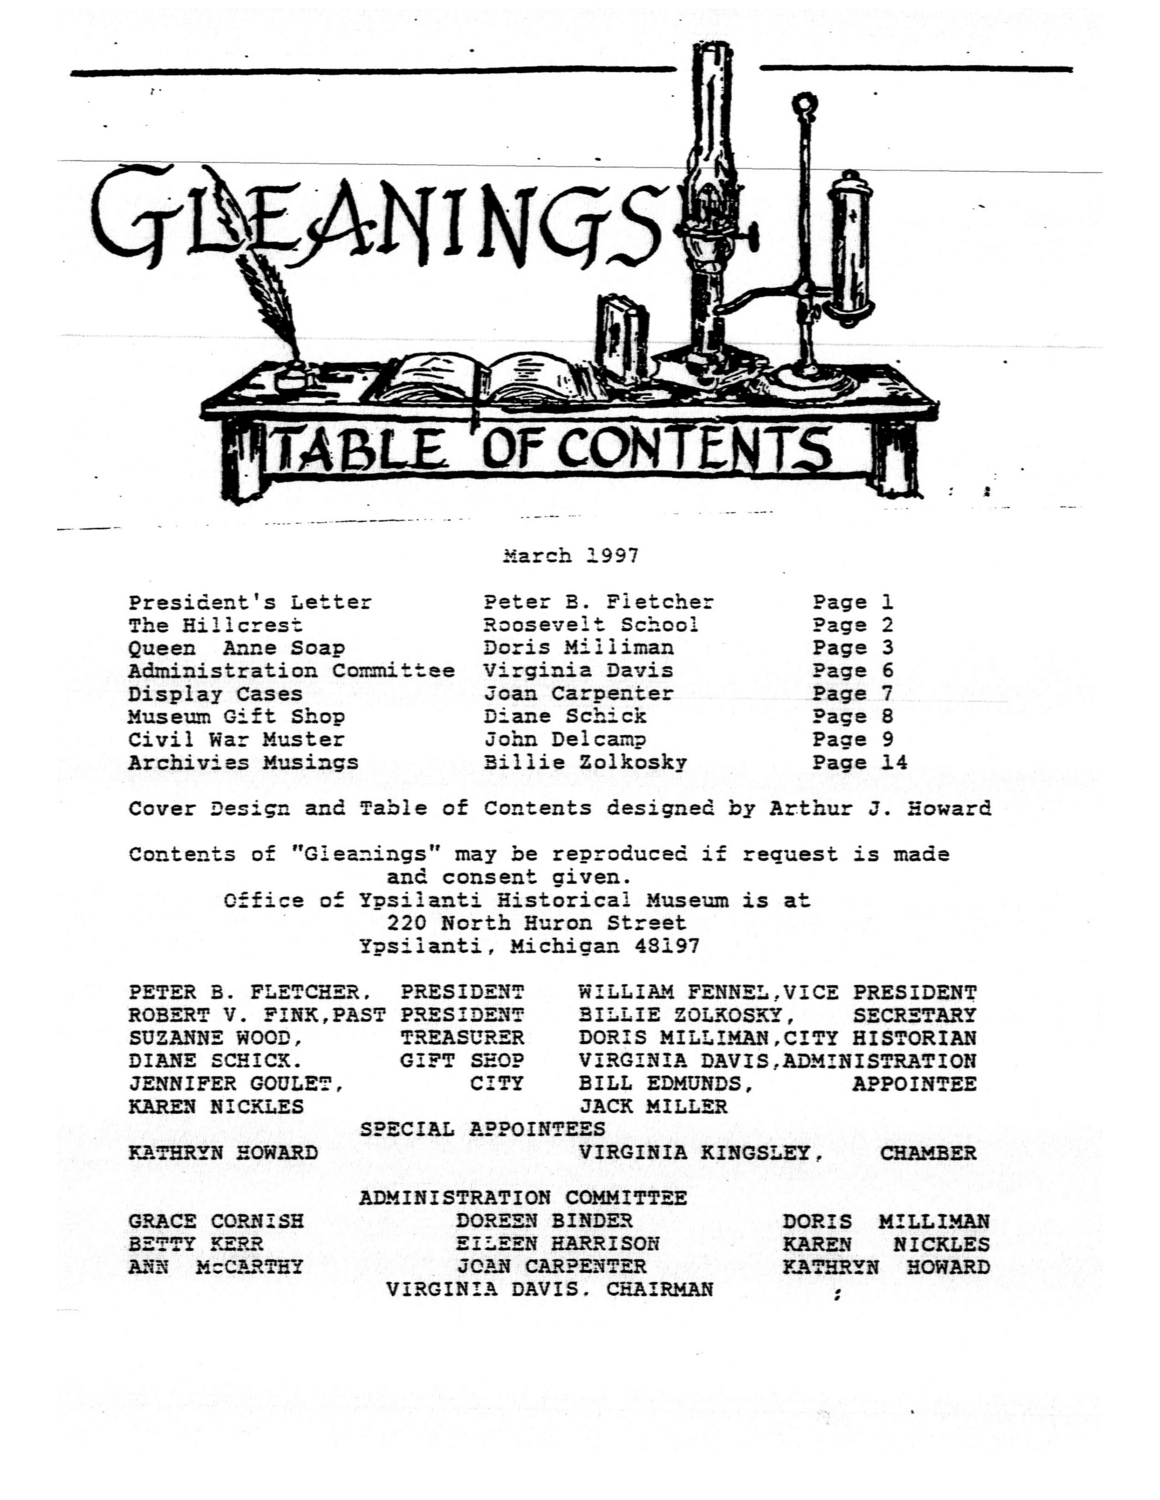 Ypsilanti Gleanings, March 1997 image